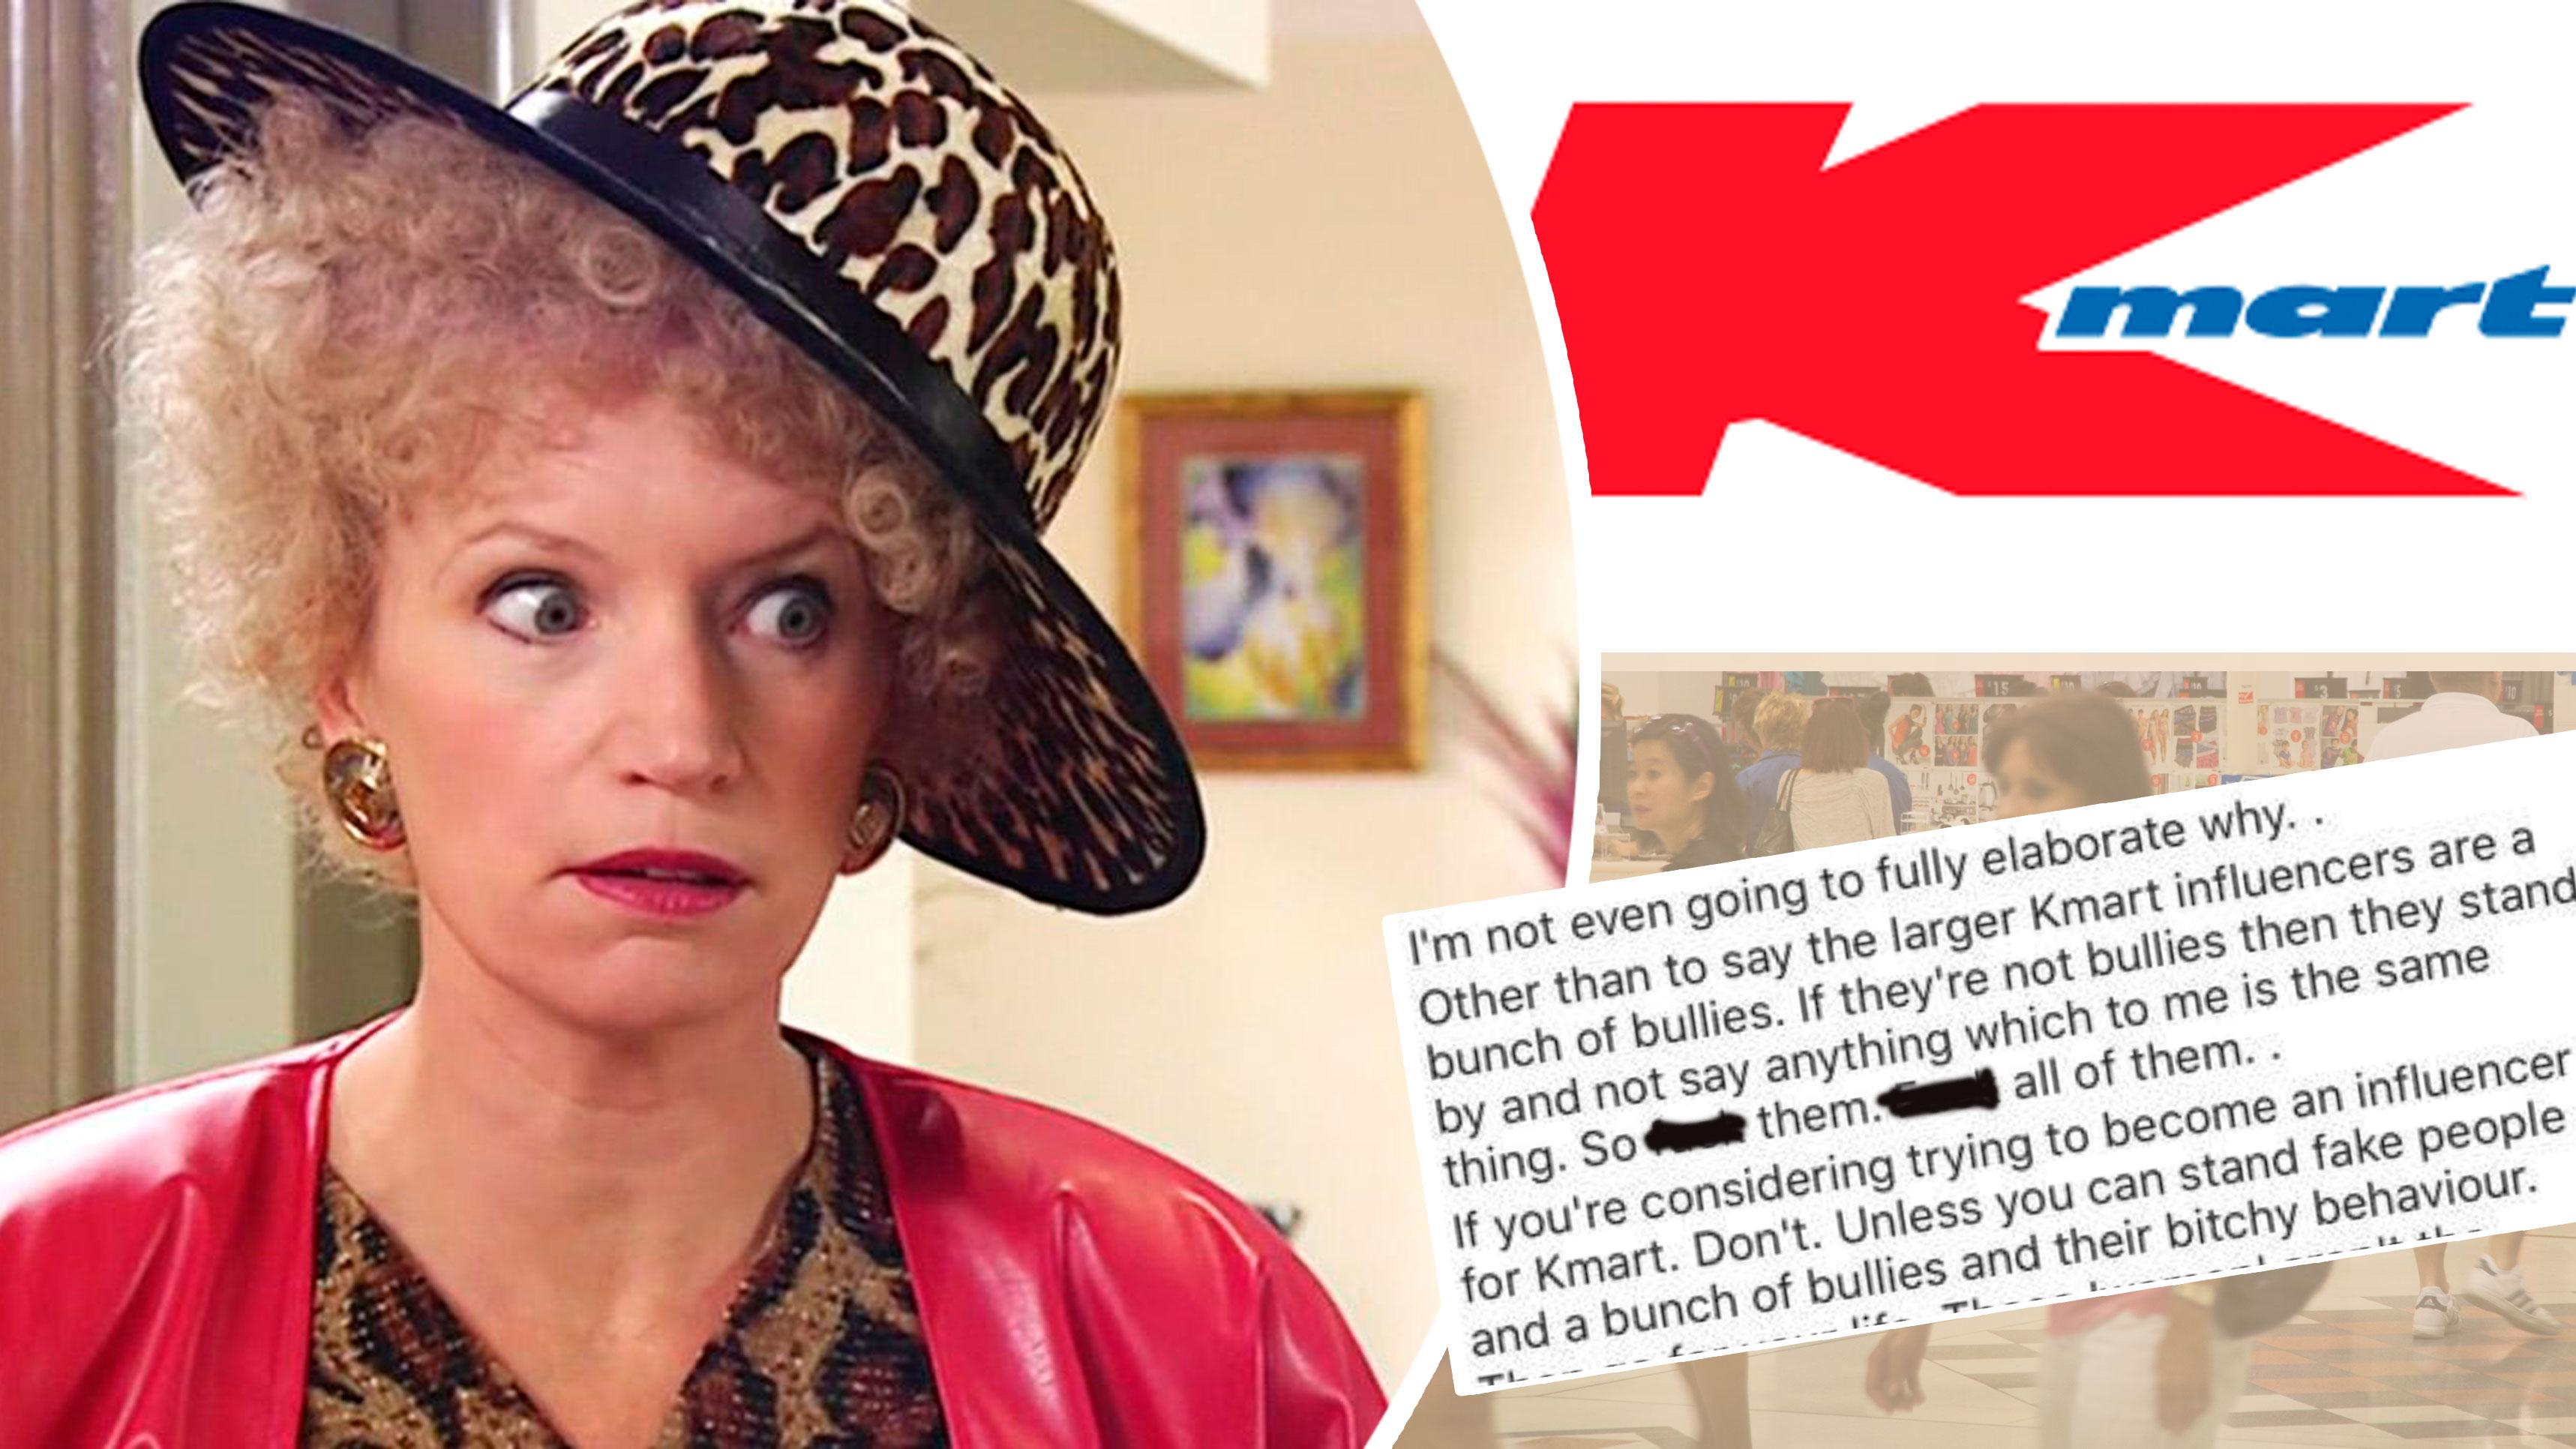 Kmart hacks fan page blows up over 'bullying' claims